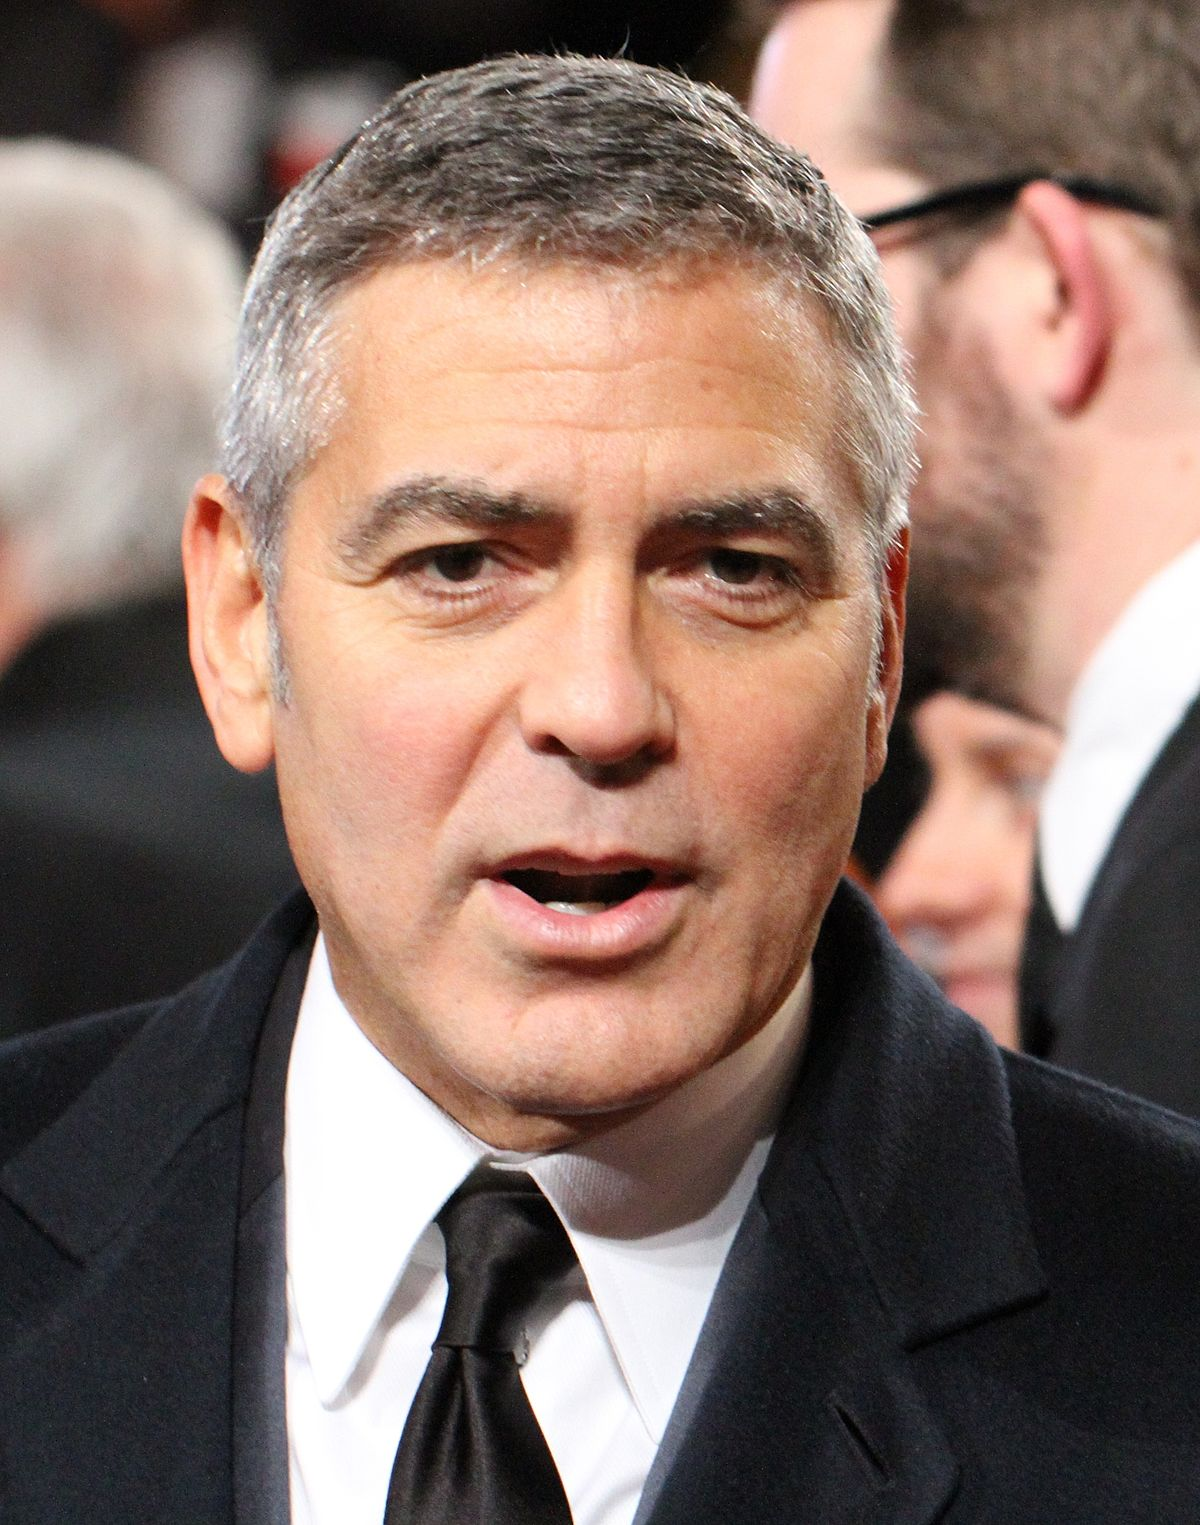 george clooney - photo #18